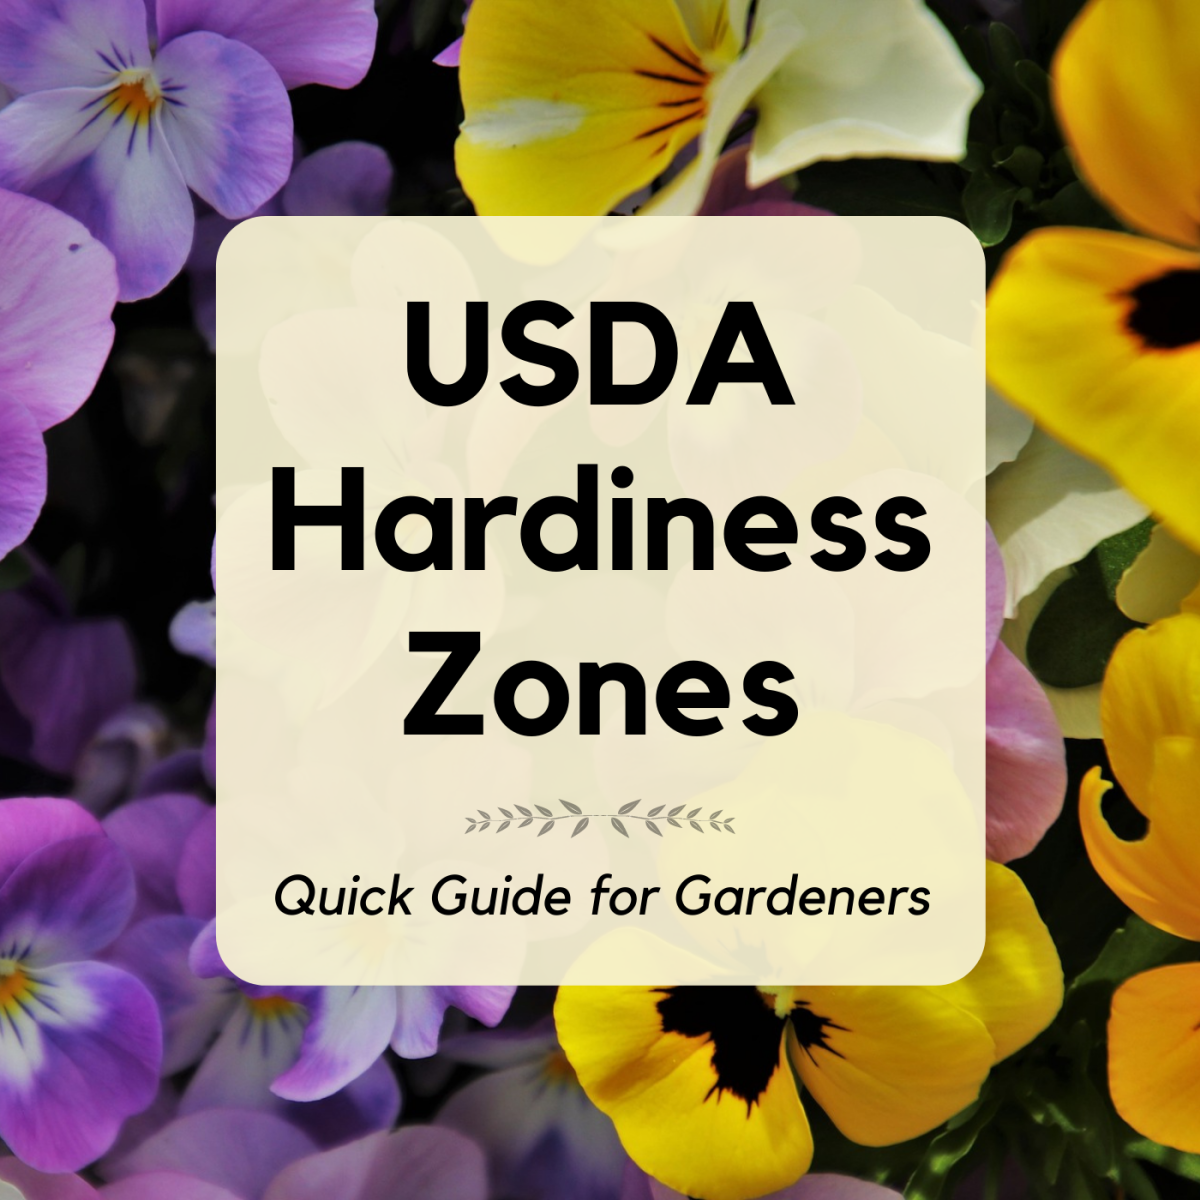 Learn about the USDA plant hardiness zones, also called growing zones. Explore the different zones in North America.